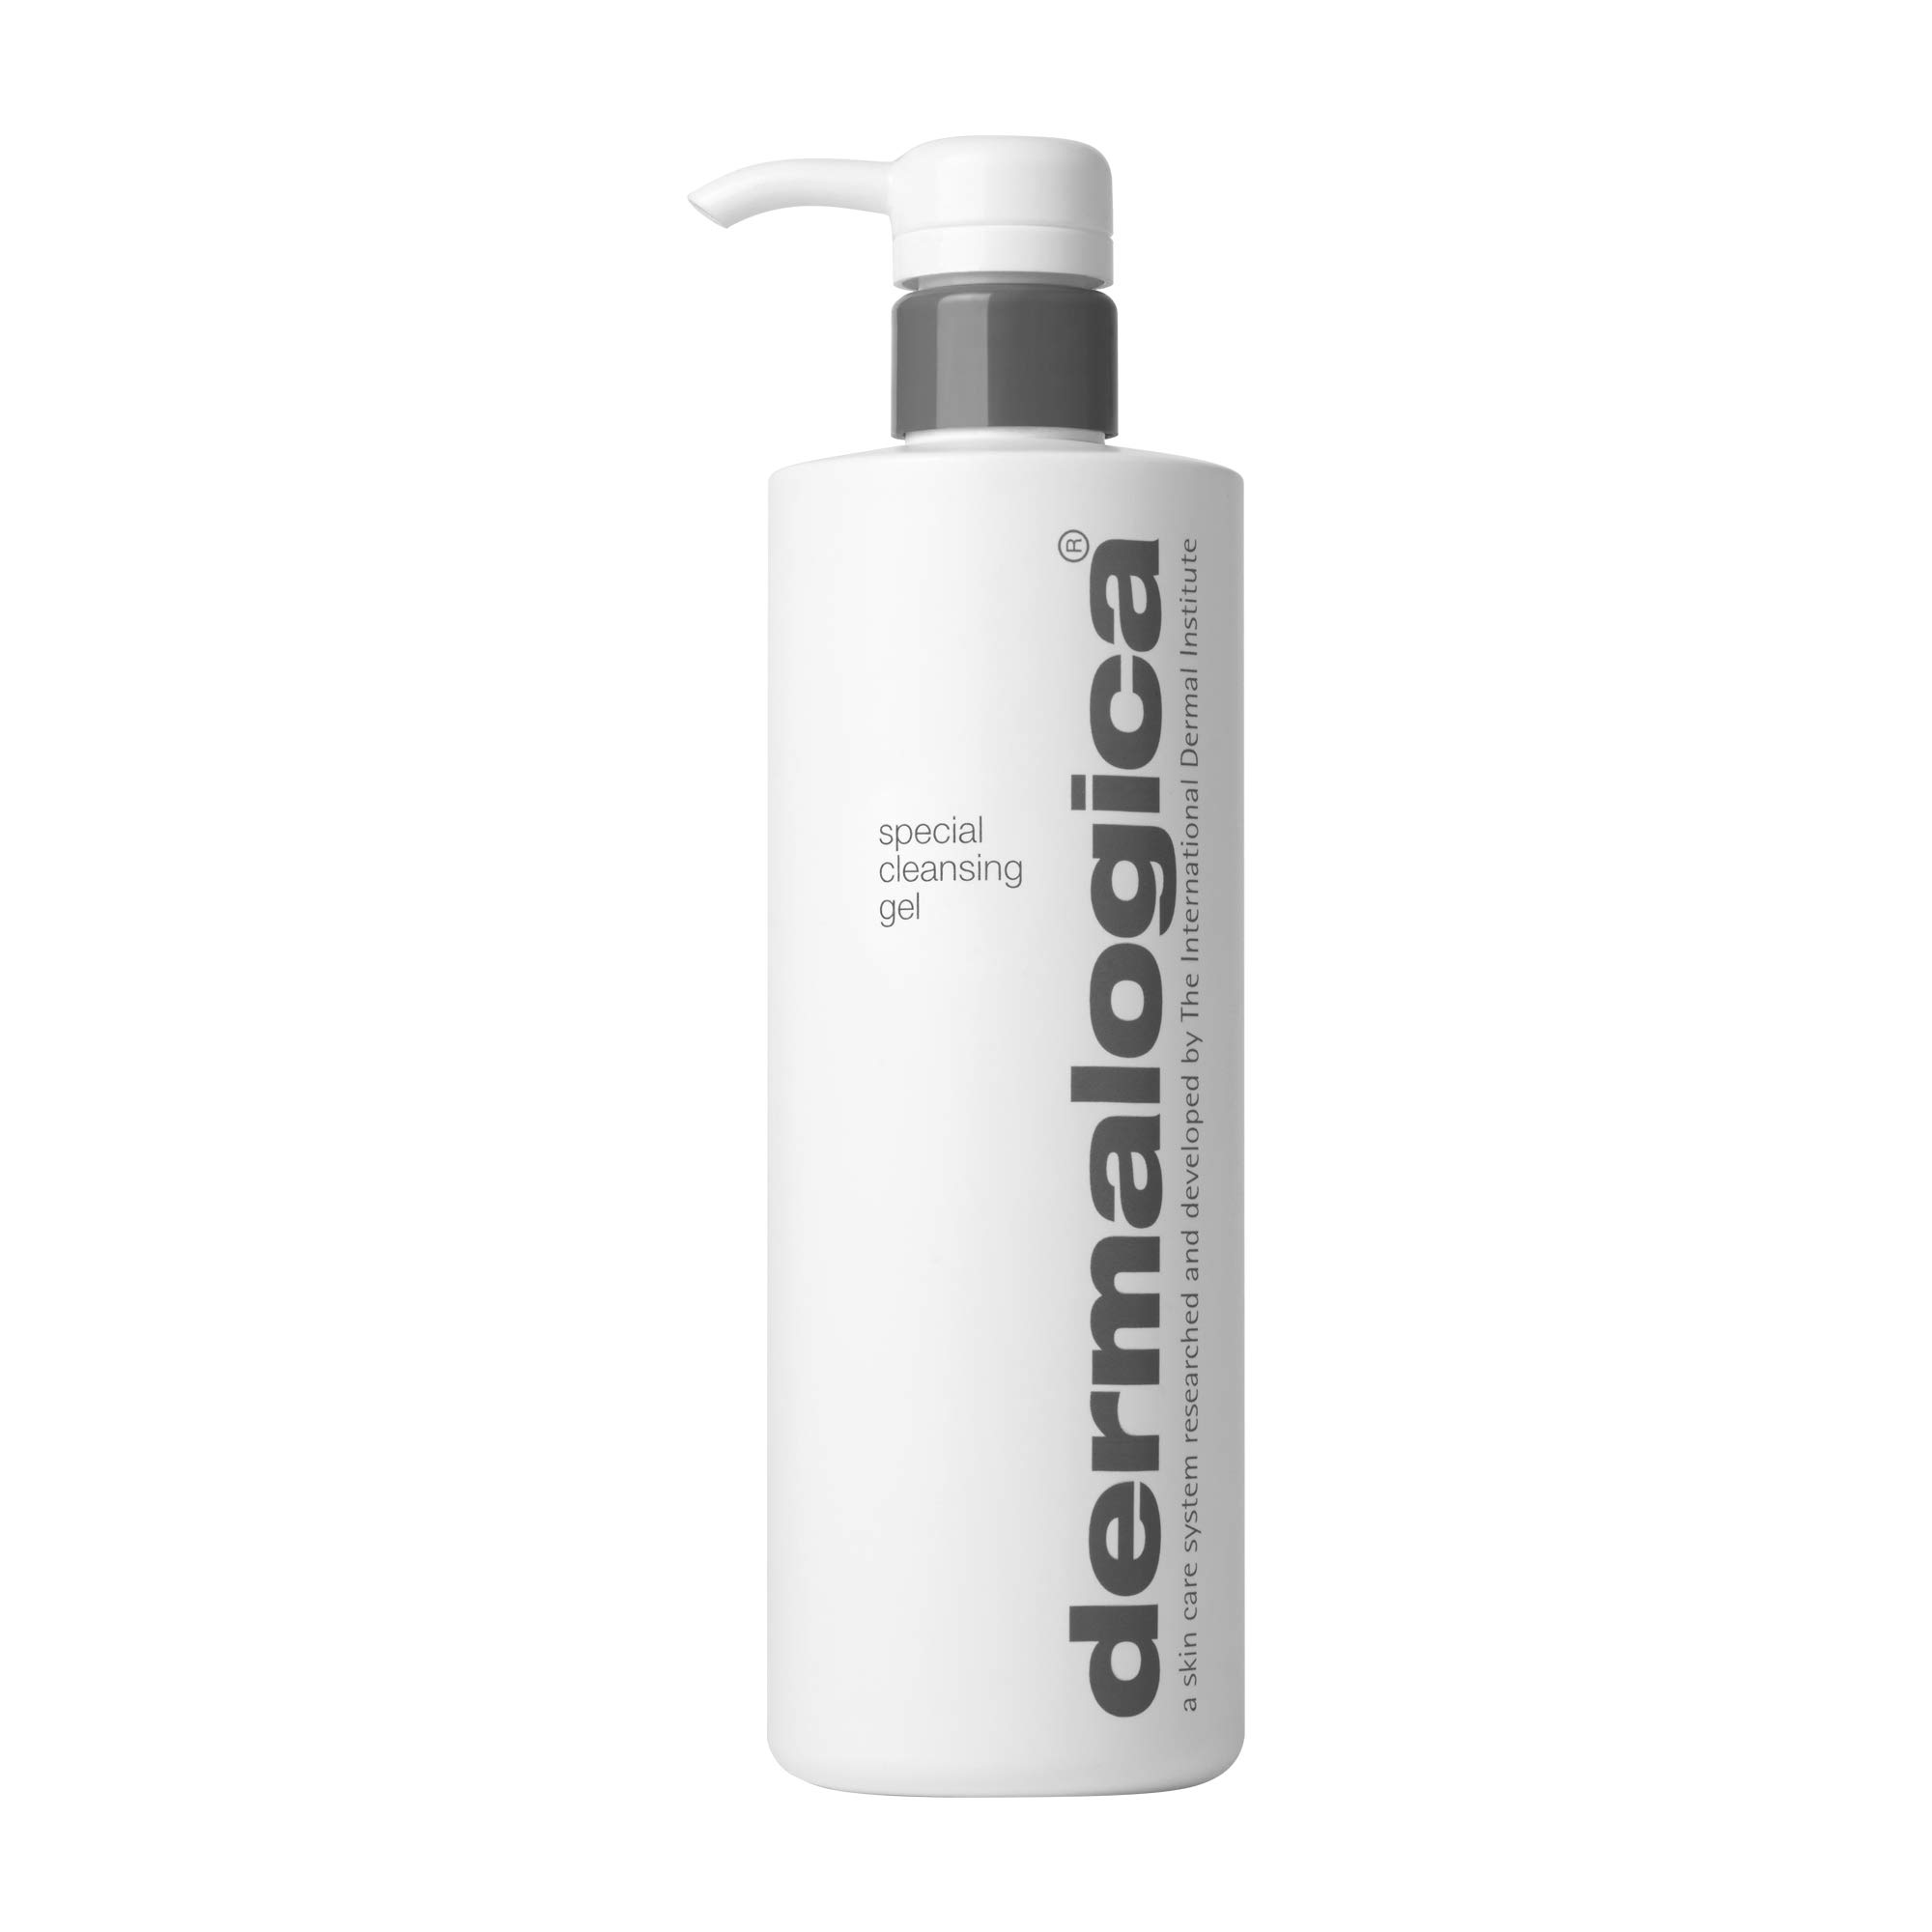 Special Cleansing Gel by Dermalogica for Unisex - 16 oz by Dermalogica